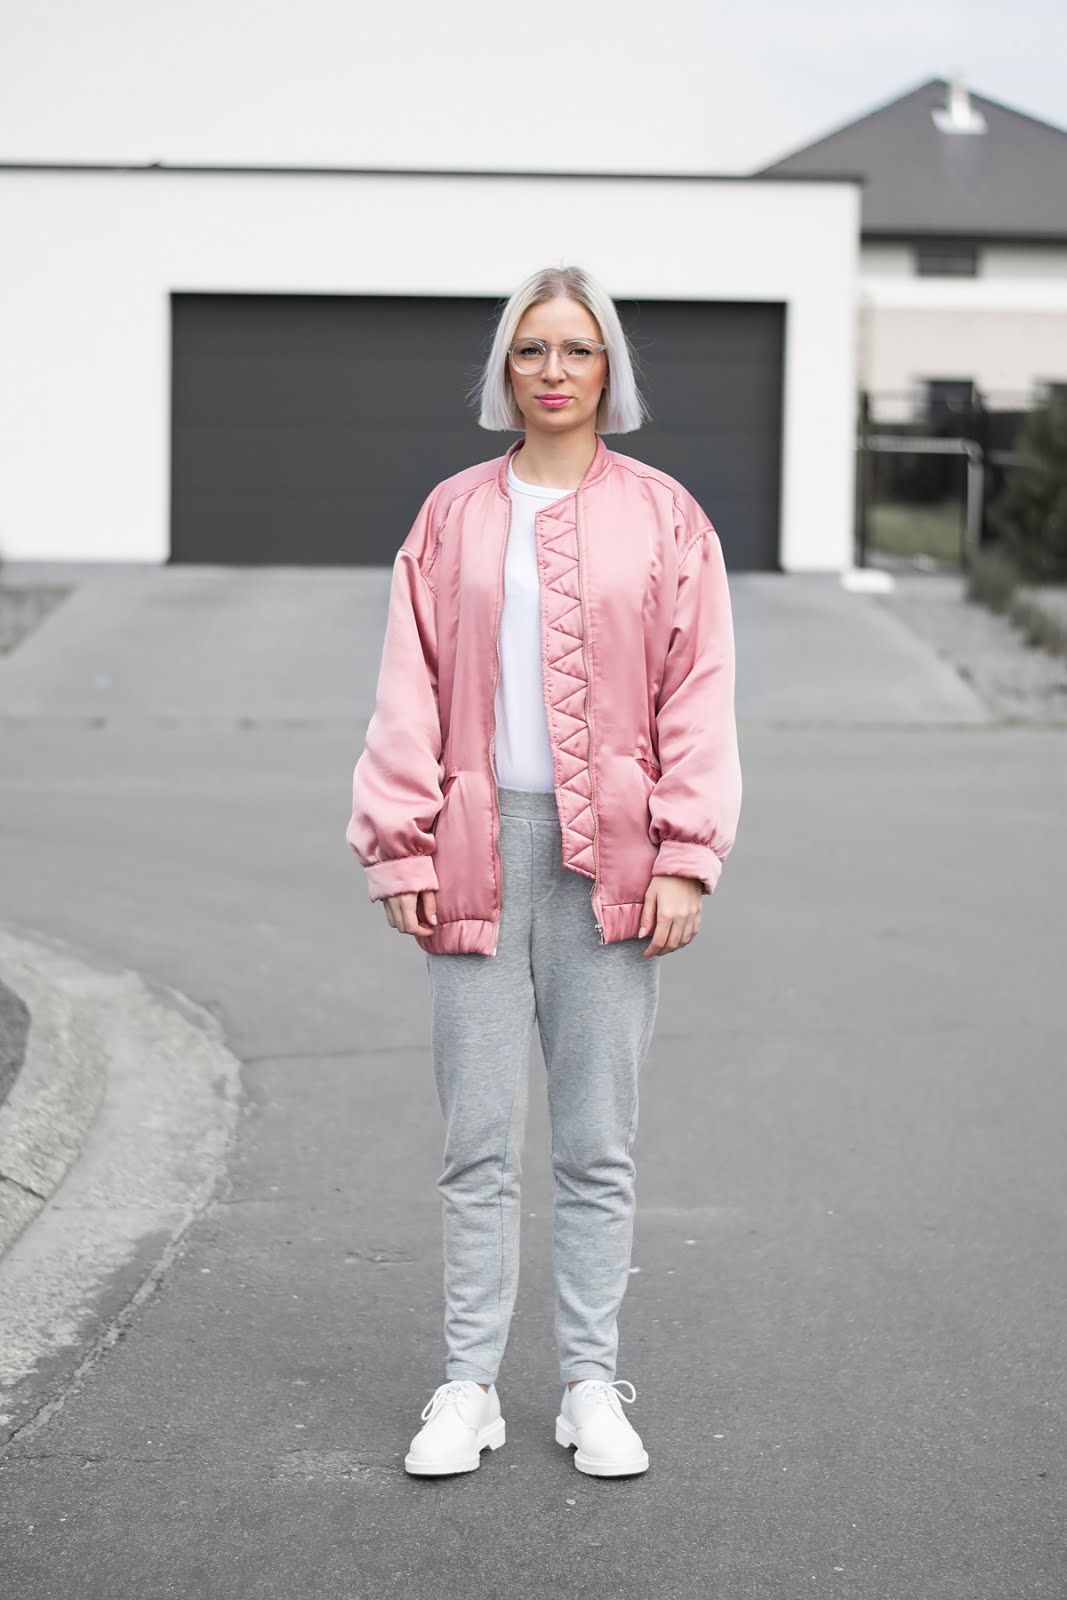 Mango pink oversized bomber jacket, Asos white longsleeve, Mango grey sweat pants, joggers, polette transparent glasses, monochrome, white dr martens